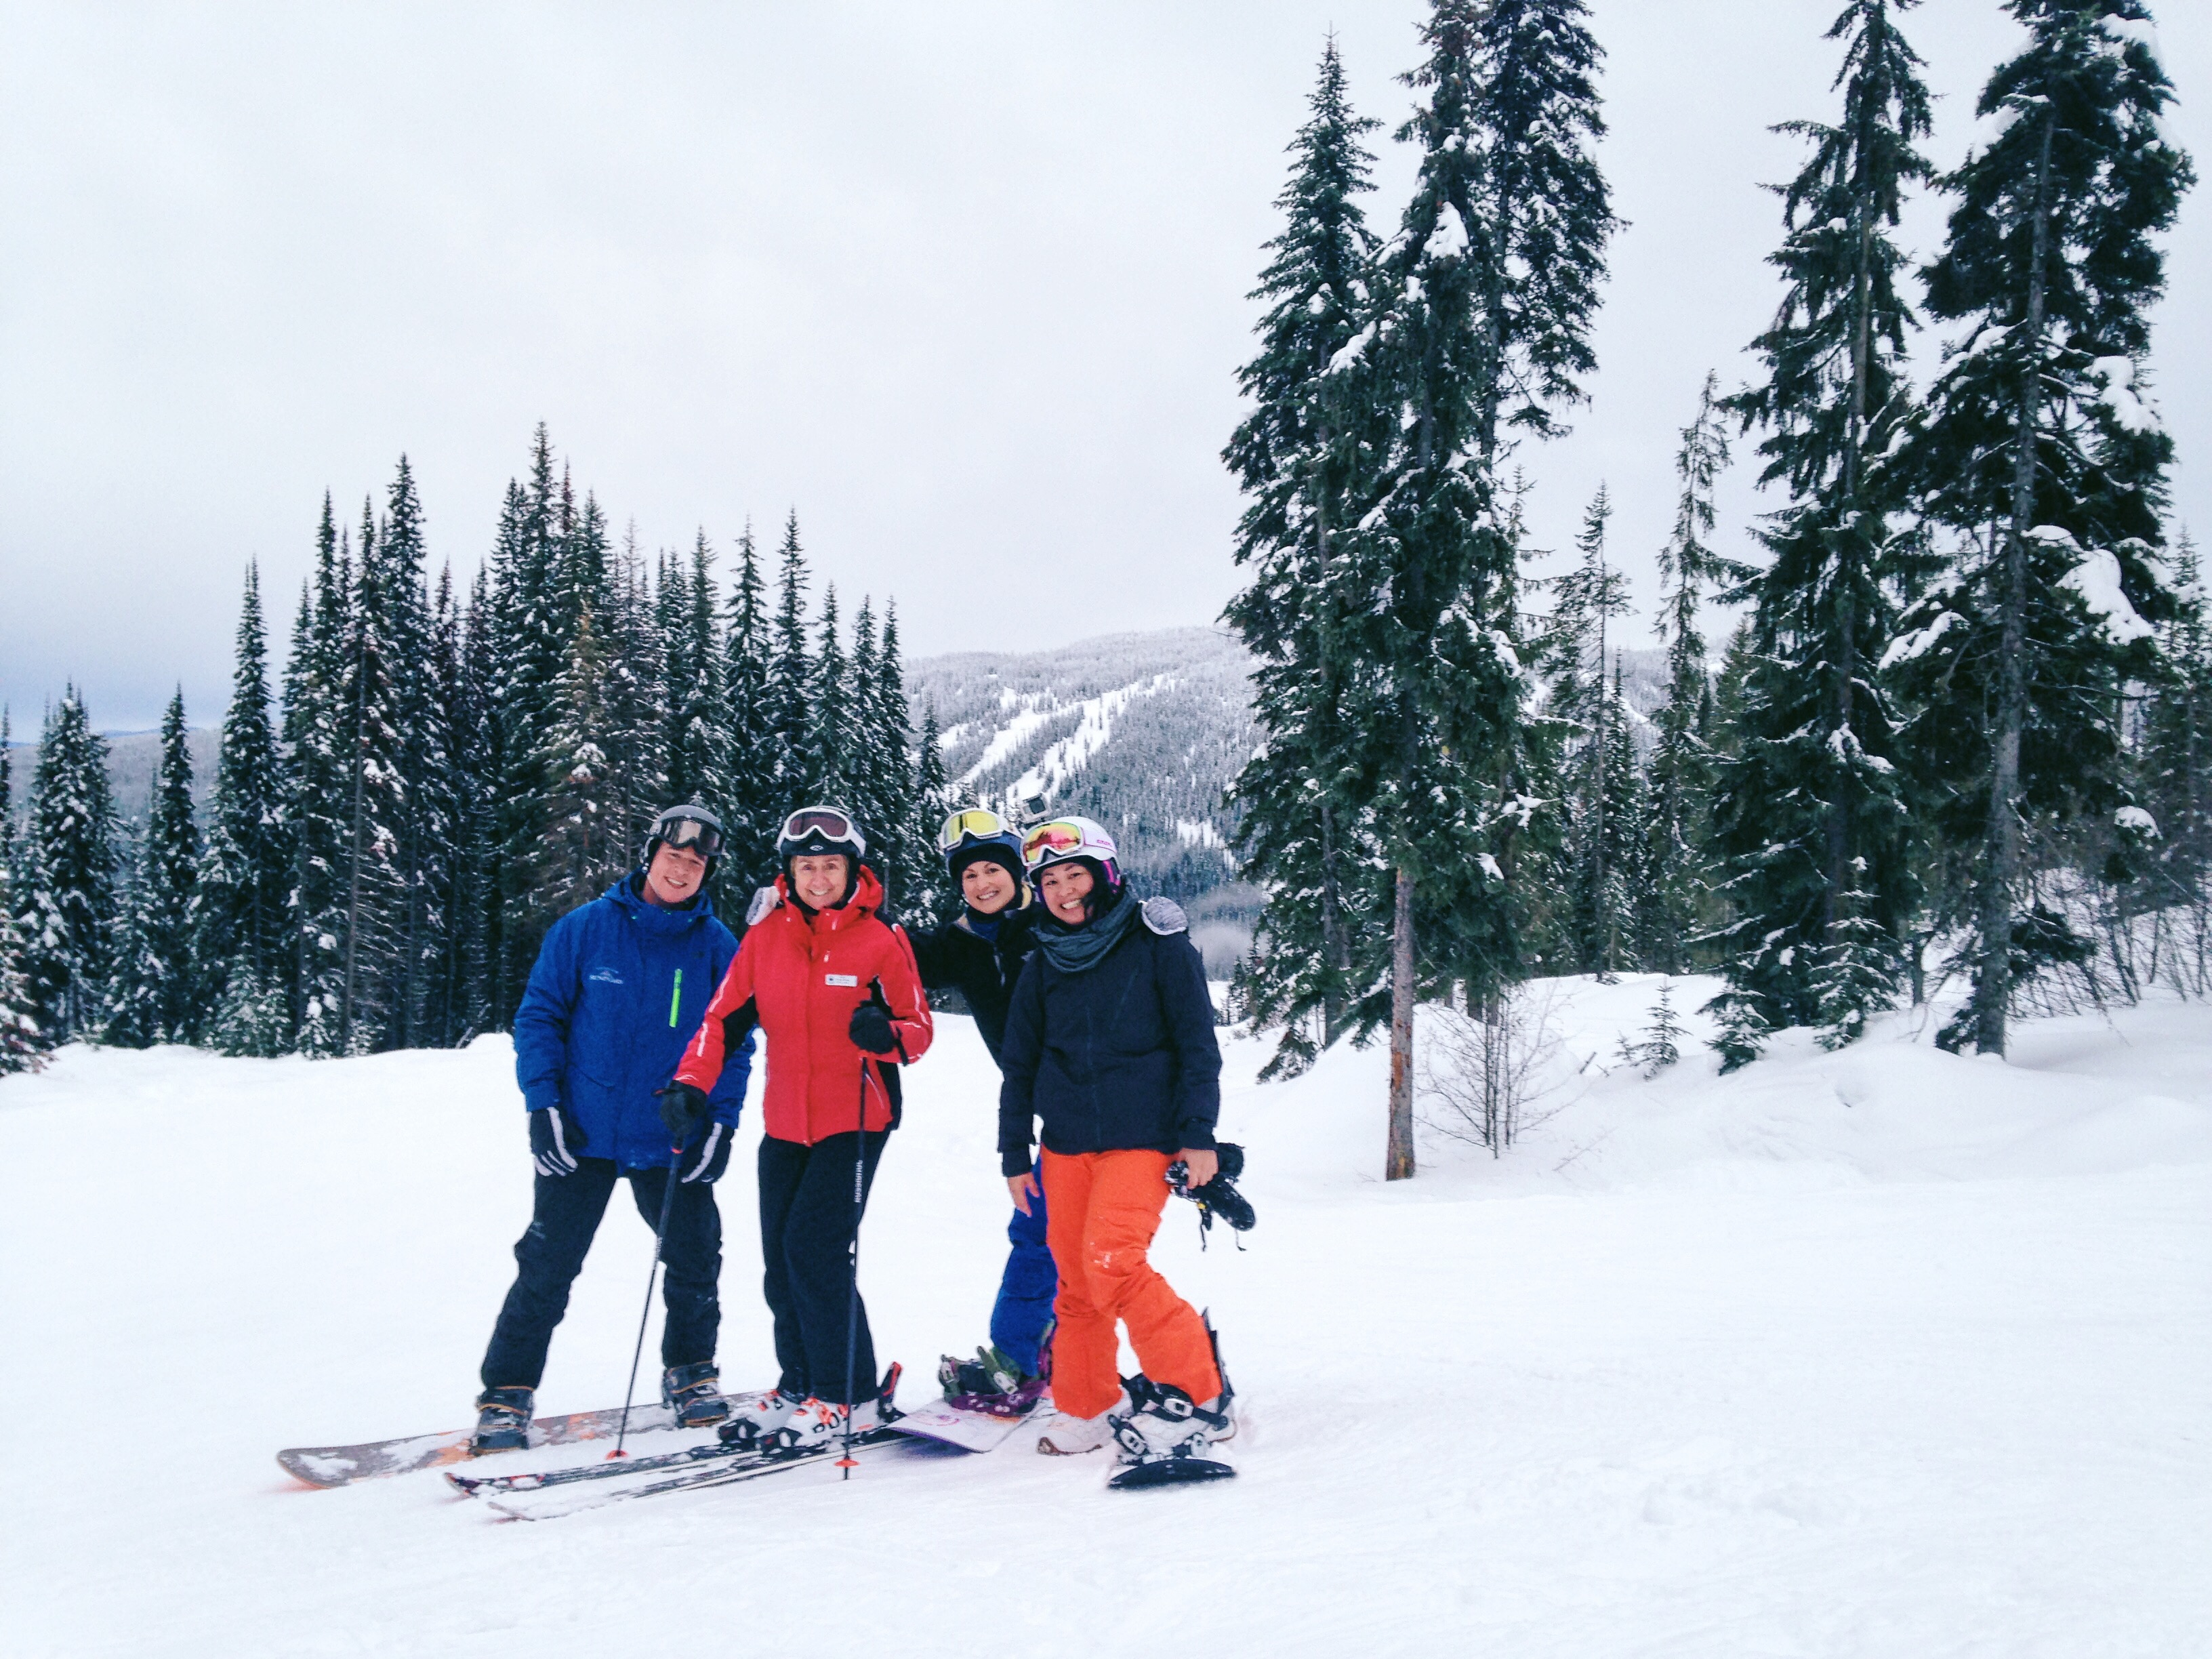 Snowboarding with Nancy Green at Sunpeaks